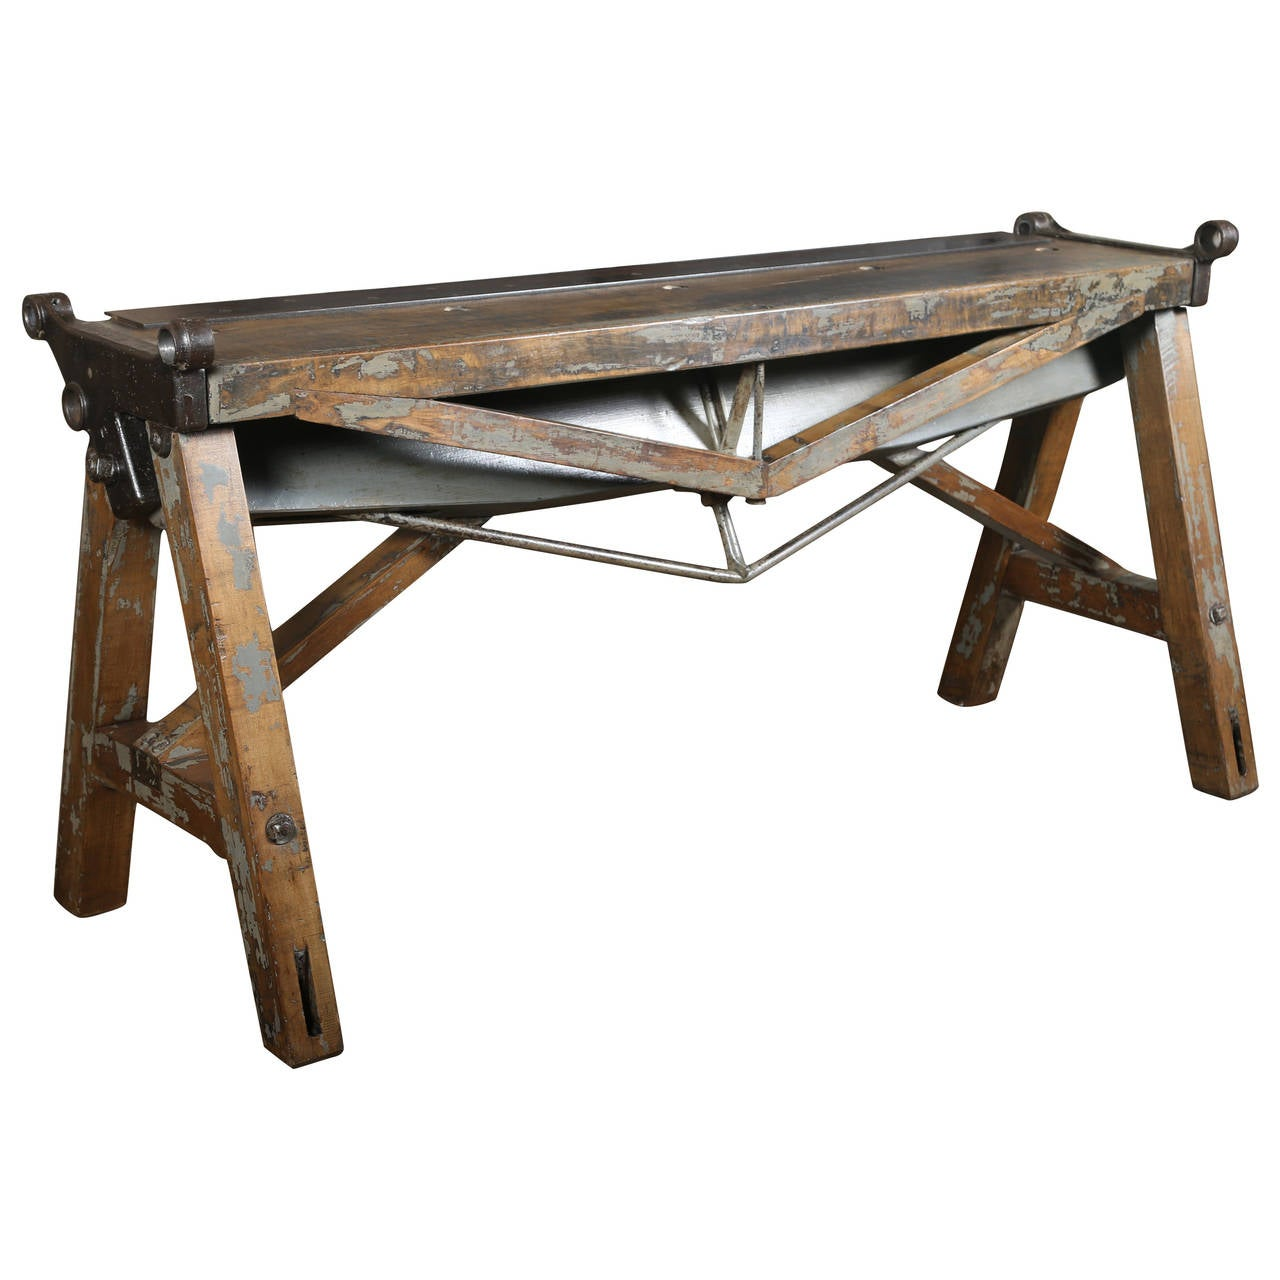 Rustic Antique Industrial Cast Iron Steel And Wood Factory Brake Table Stand For Sale At 1stdibs